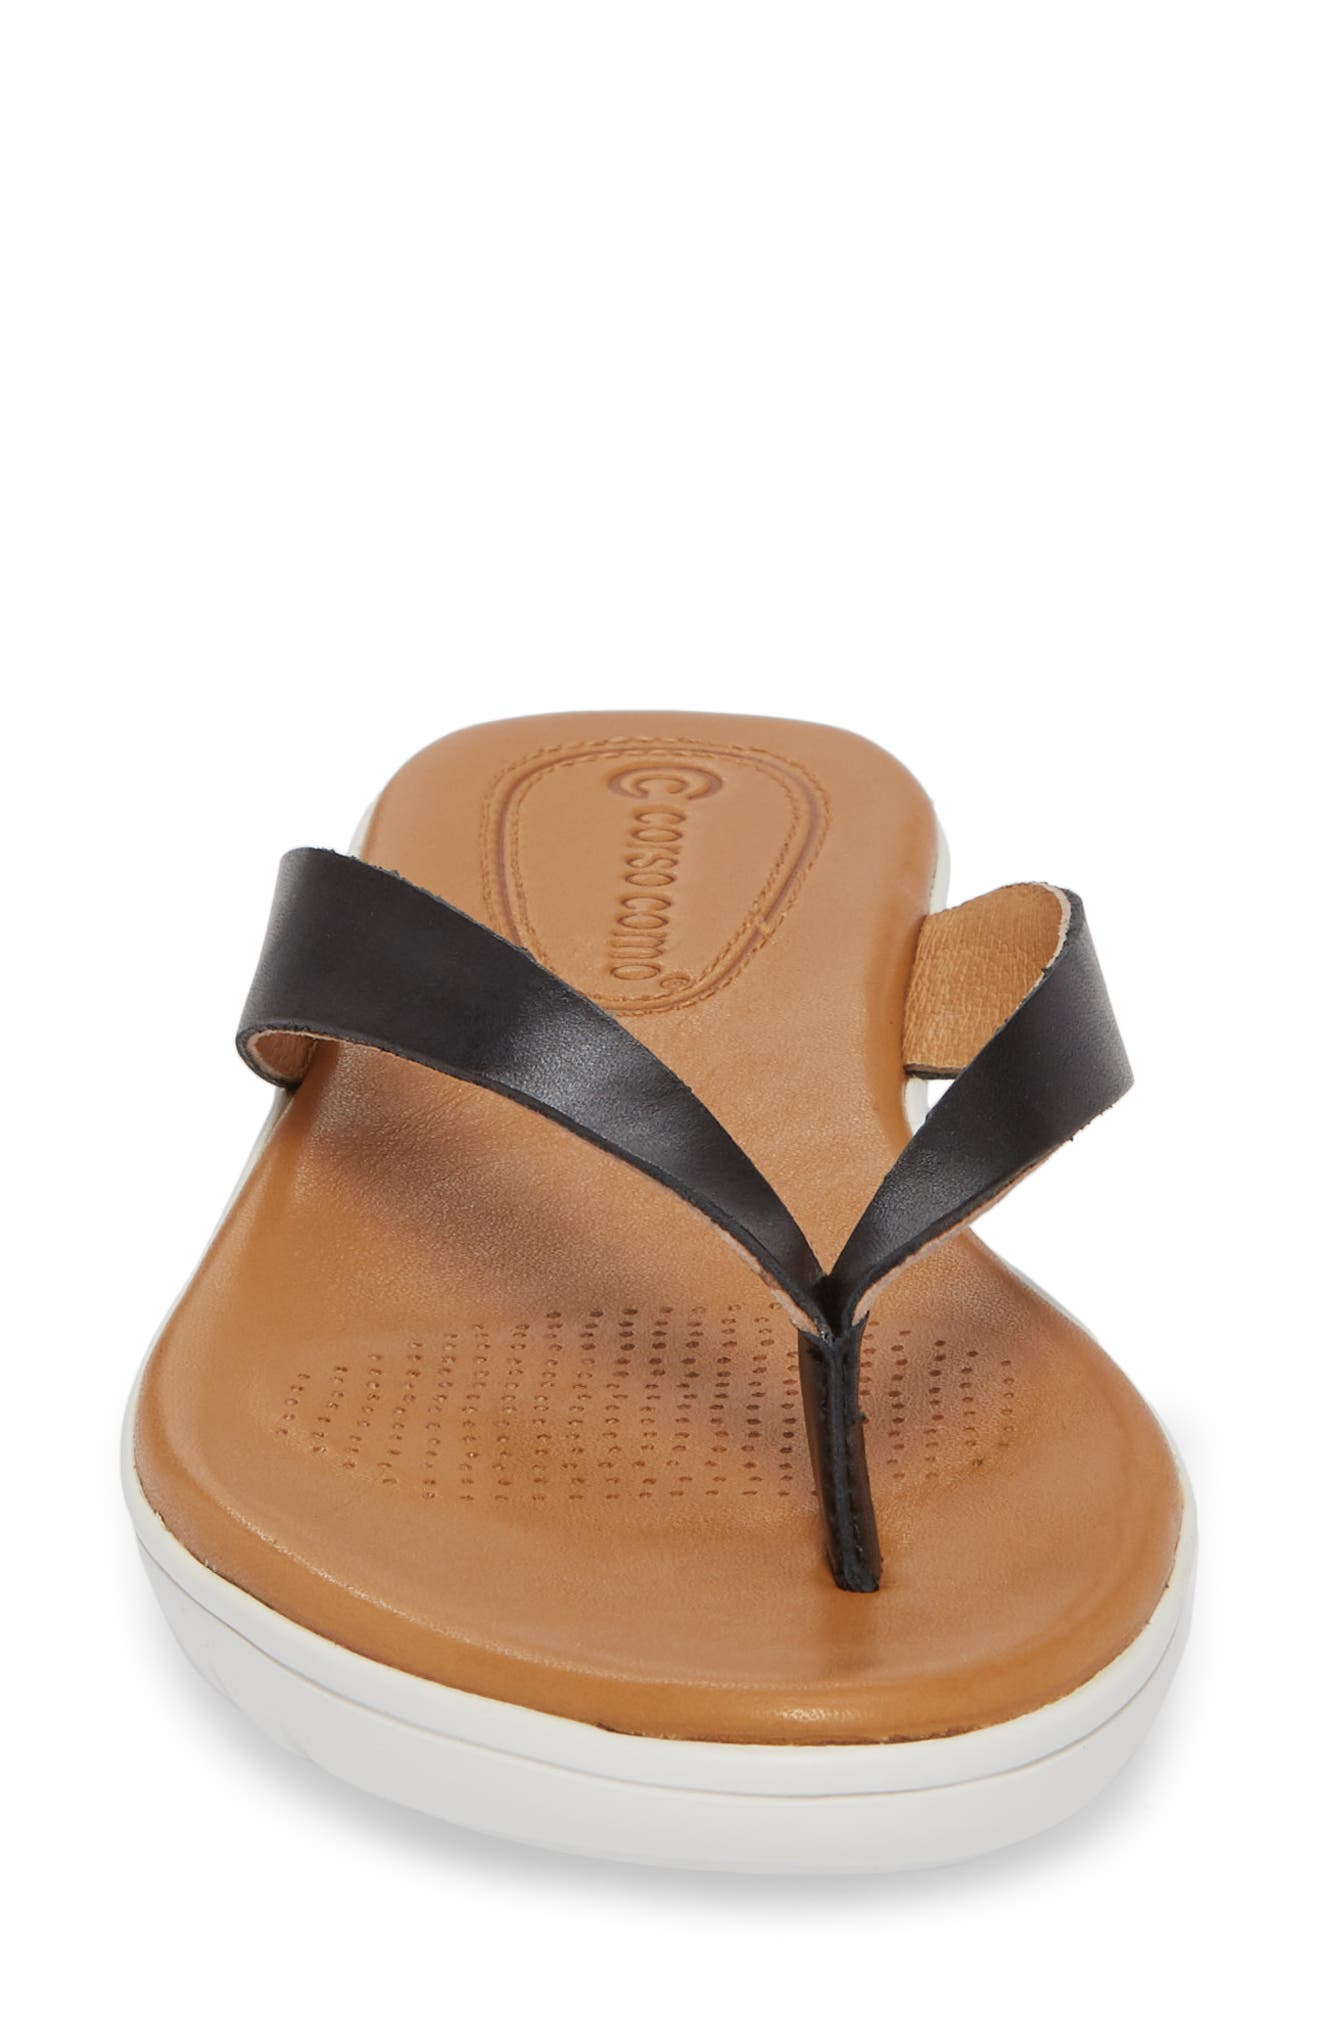 Tinnah Flip Flop,                             Alternate thumbnail 4, color,                             BLACK/ BLACK LEATHER